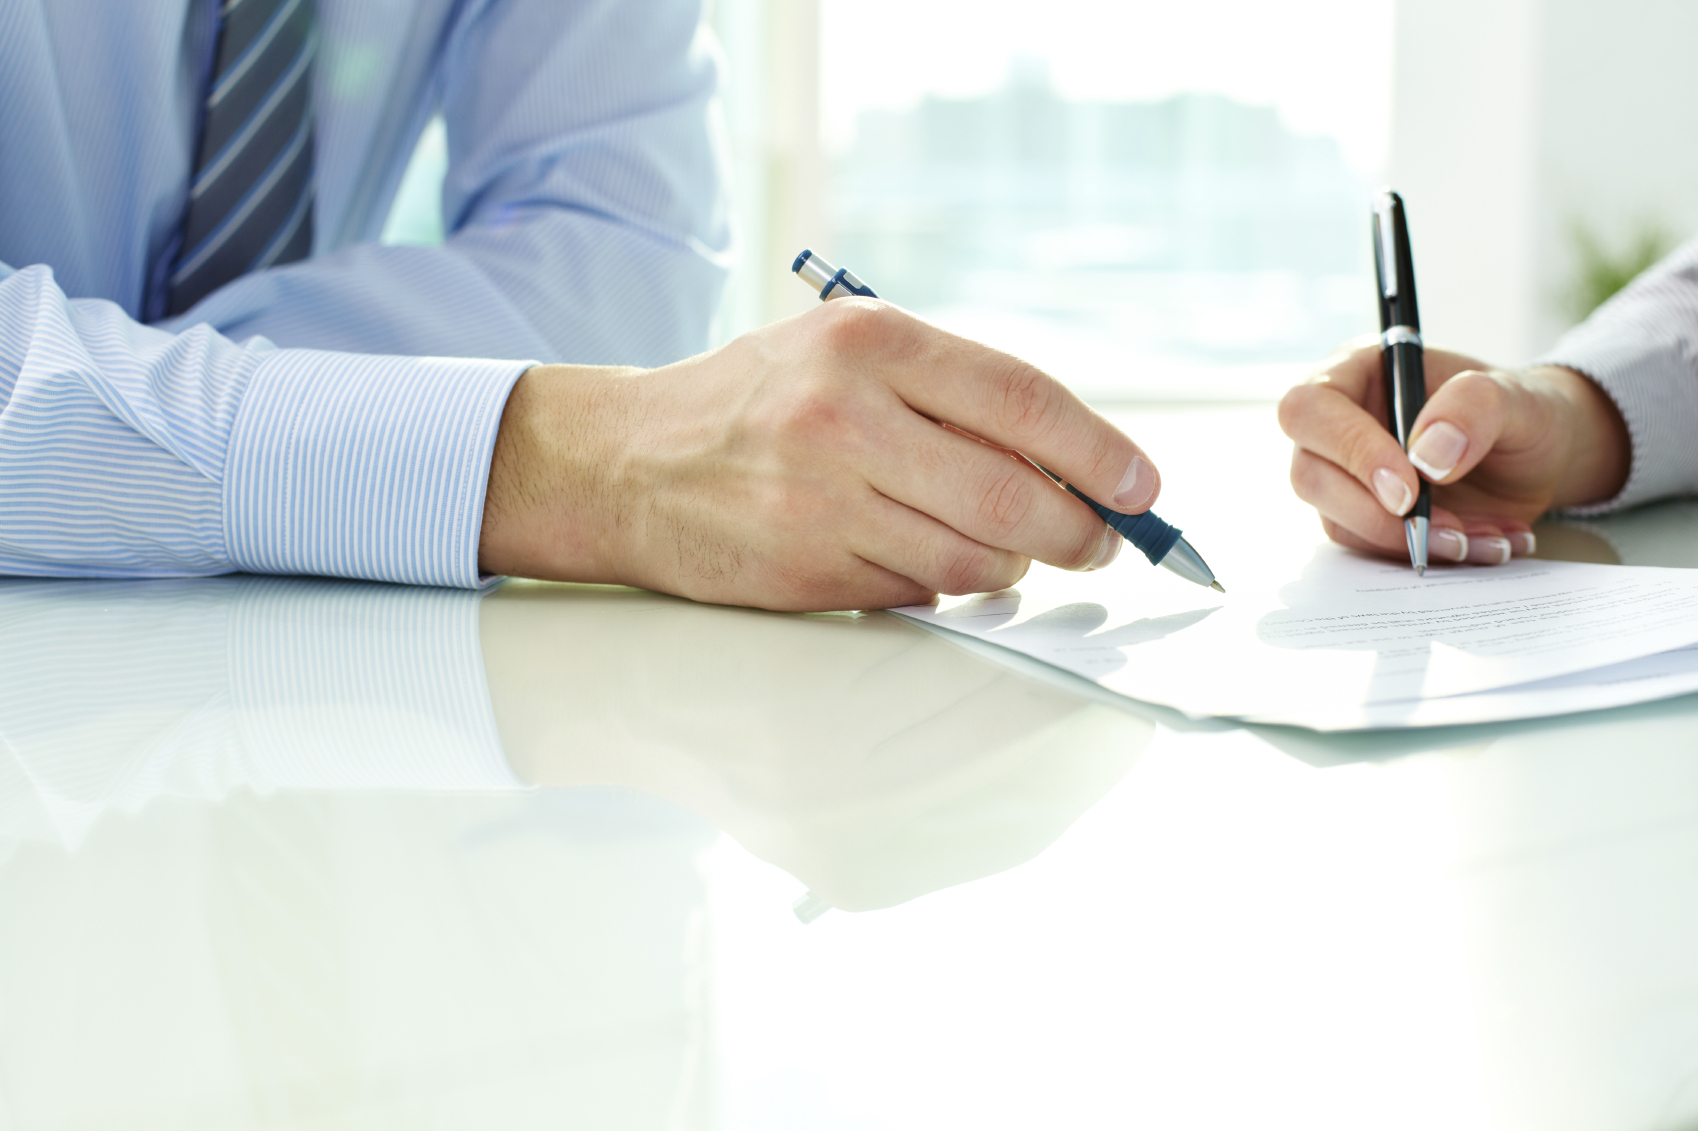 Tips for Nailing Your Job Interview